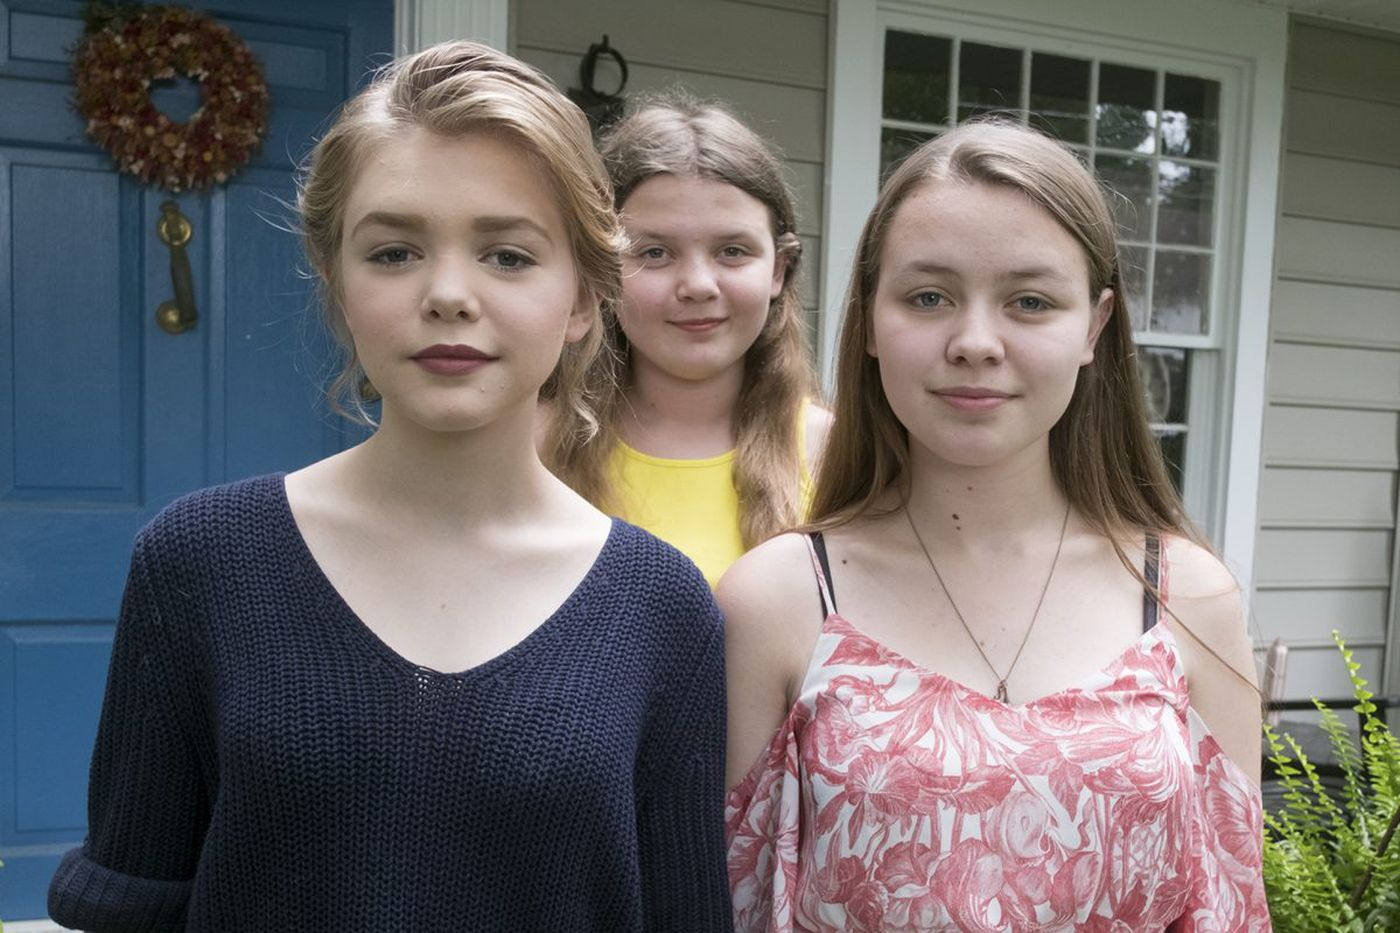 Collarbone showing? Girls say school dress codes are sexist